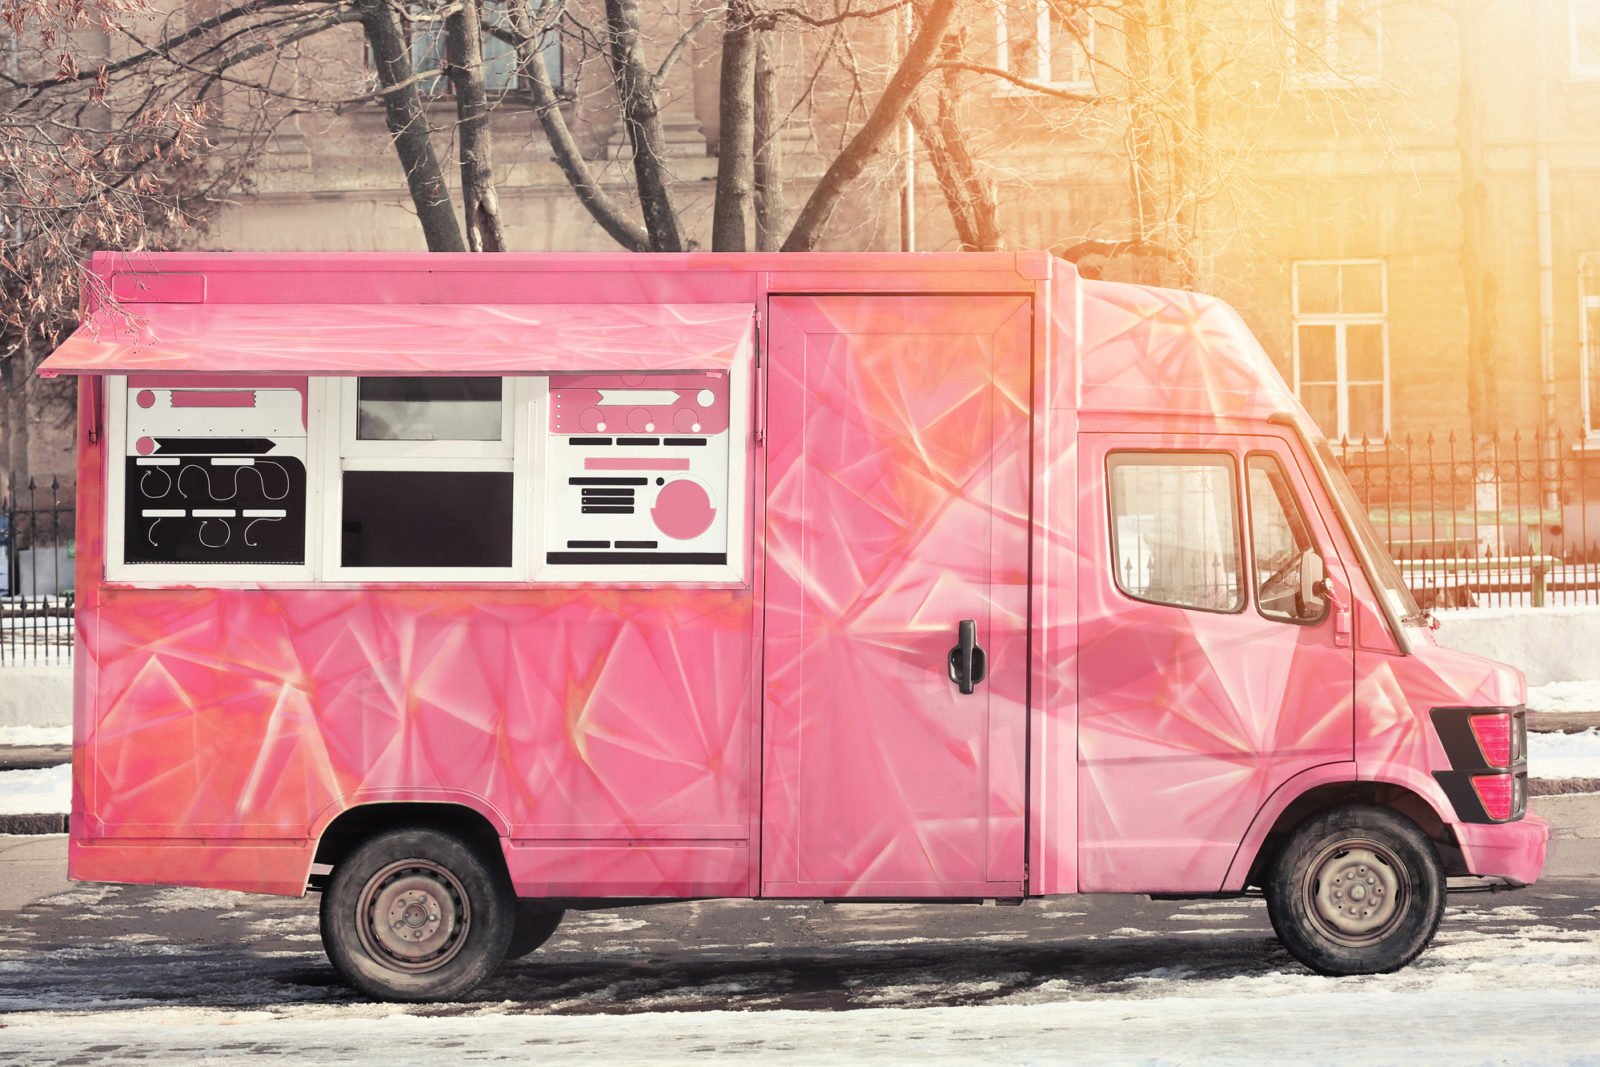 35 Food Trucks in The Greater Seattle Area You Can't Miss